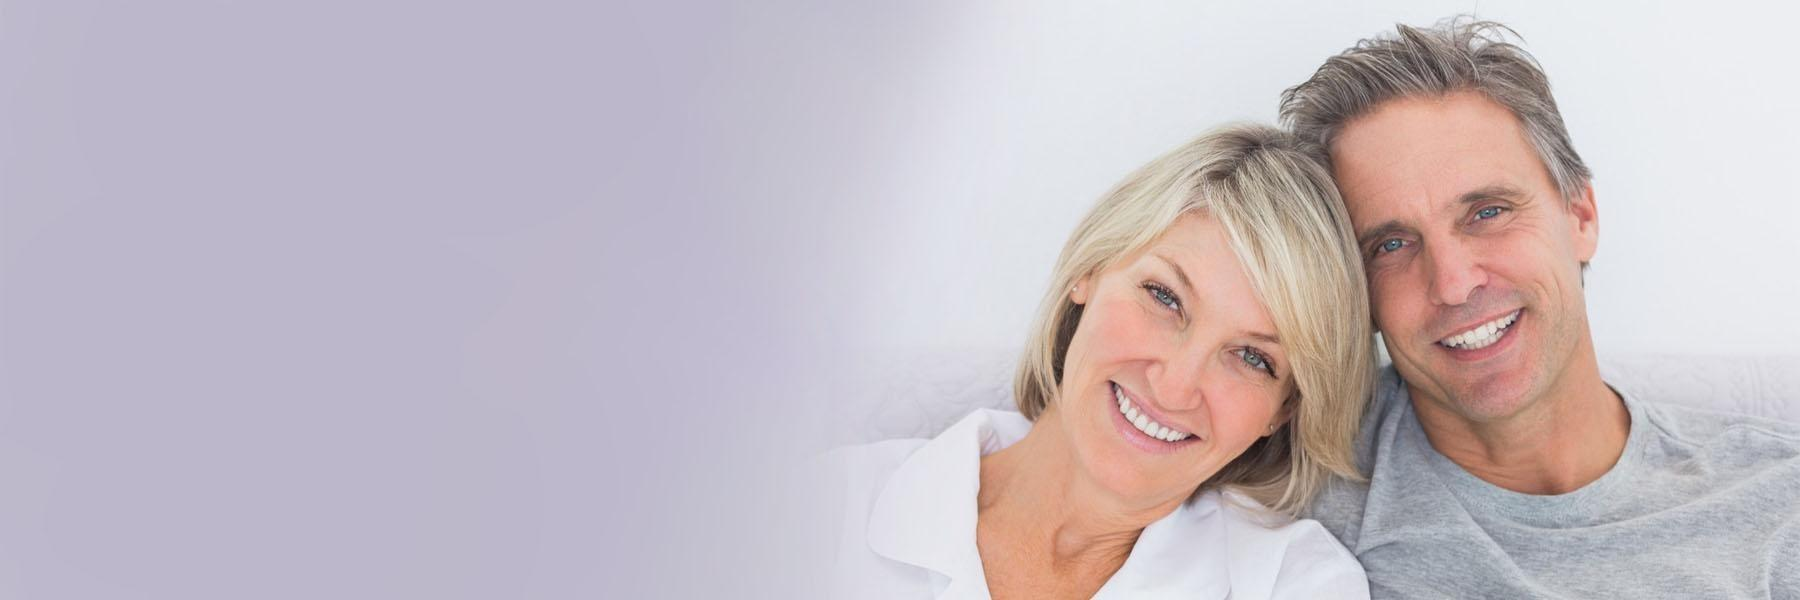 Dental Implants in Aurora, IL banner image